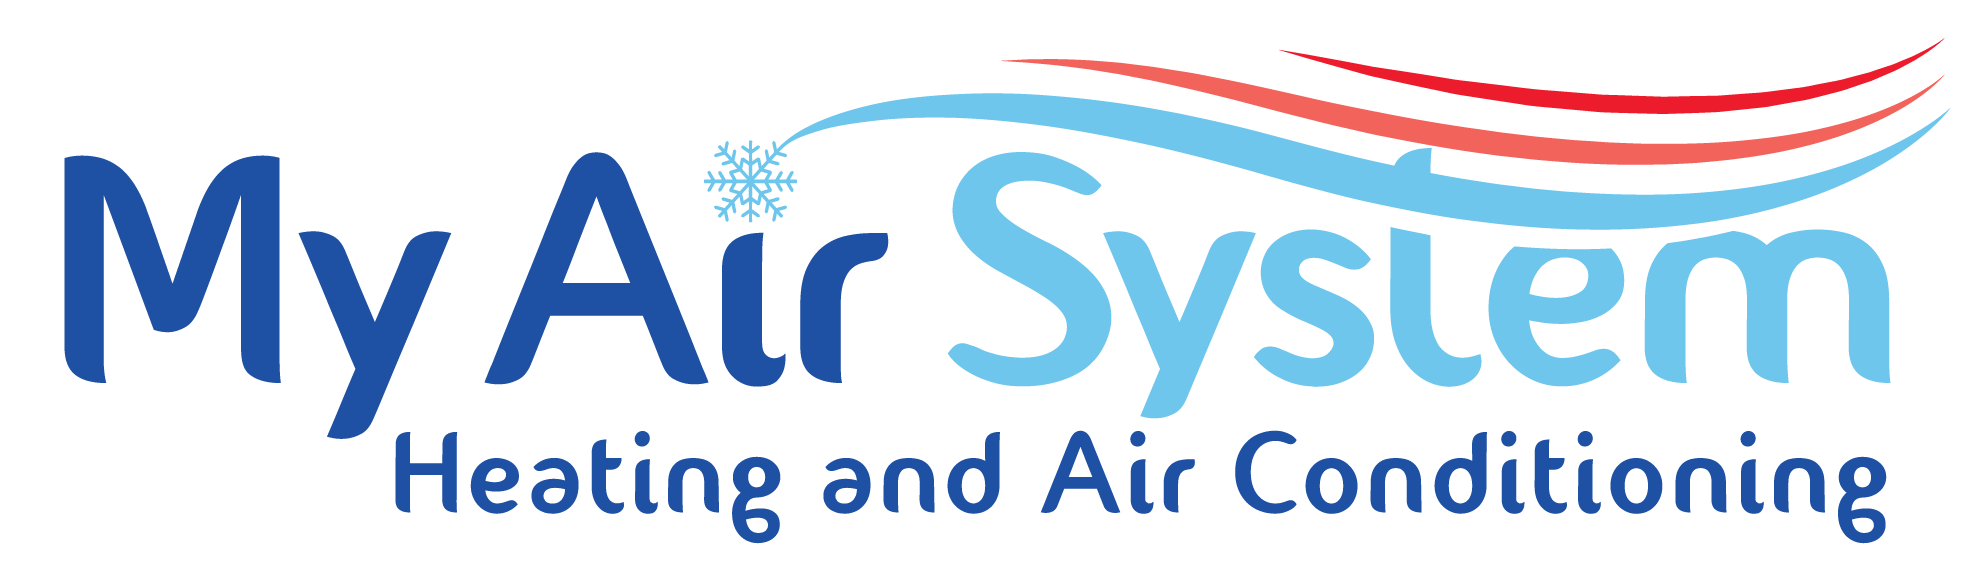 My Air System